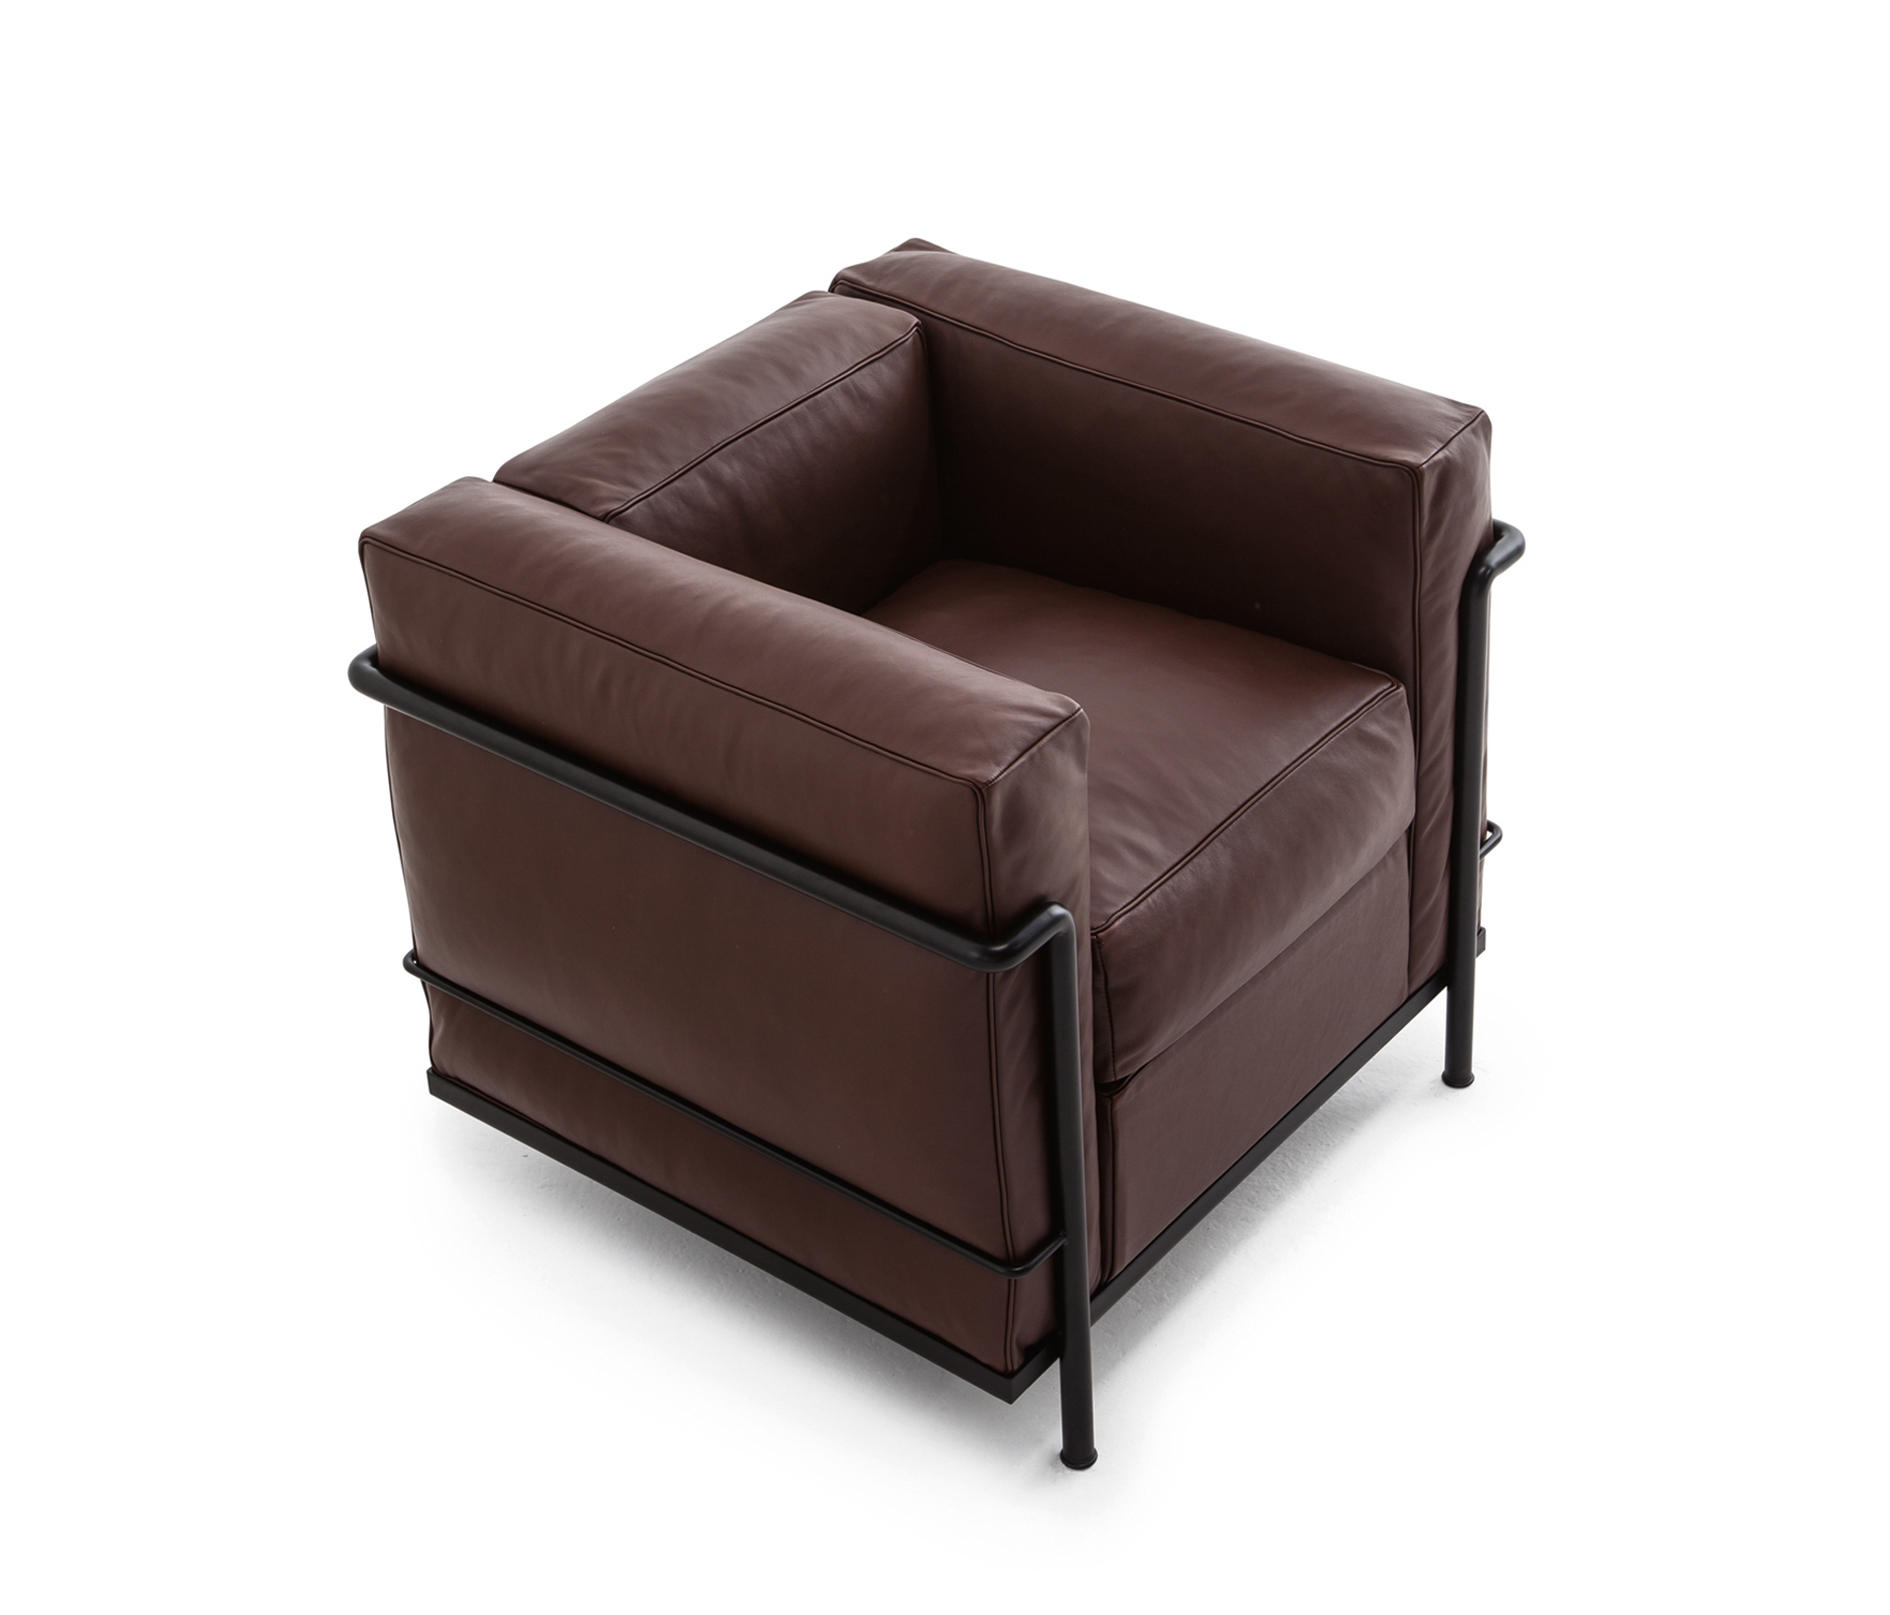 Lc2 armchair organic leather armchairs from cassina for Cassina spa meda